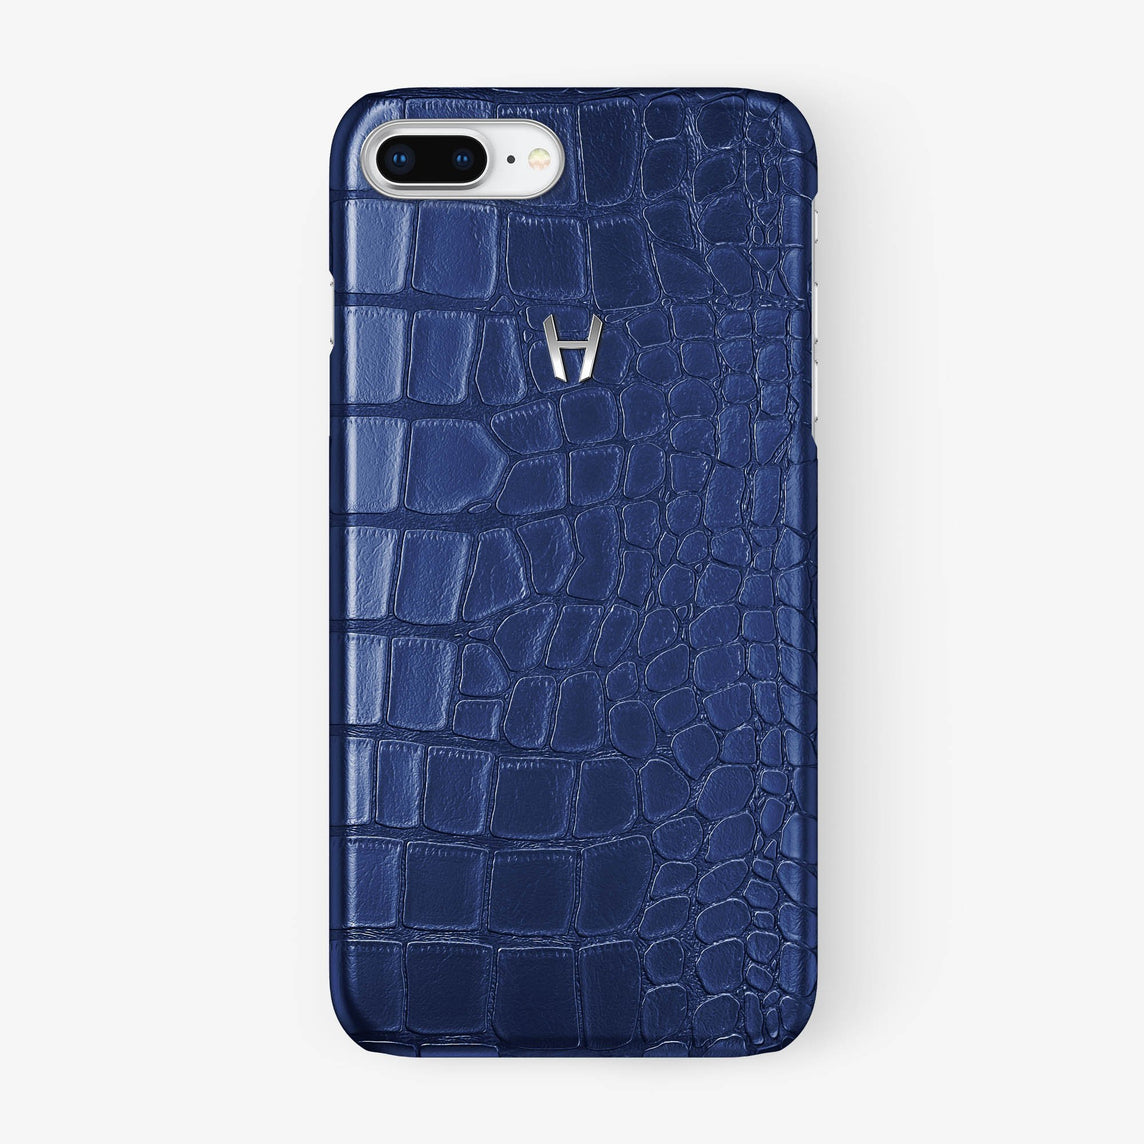 Alligator [iPhone Case] [model:iphone-7p-8p-case] [colour:navy-blue] [finishing:stainless-steel] - Hadoro